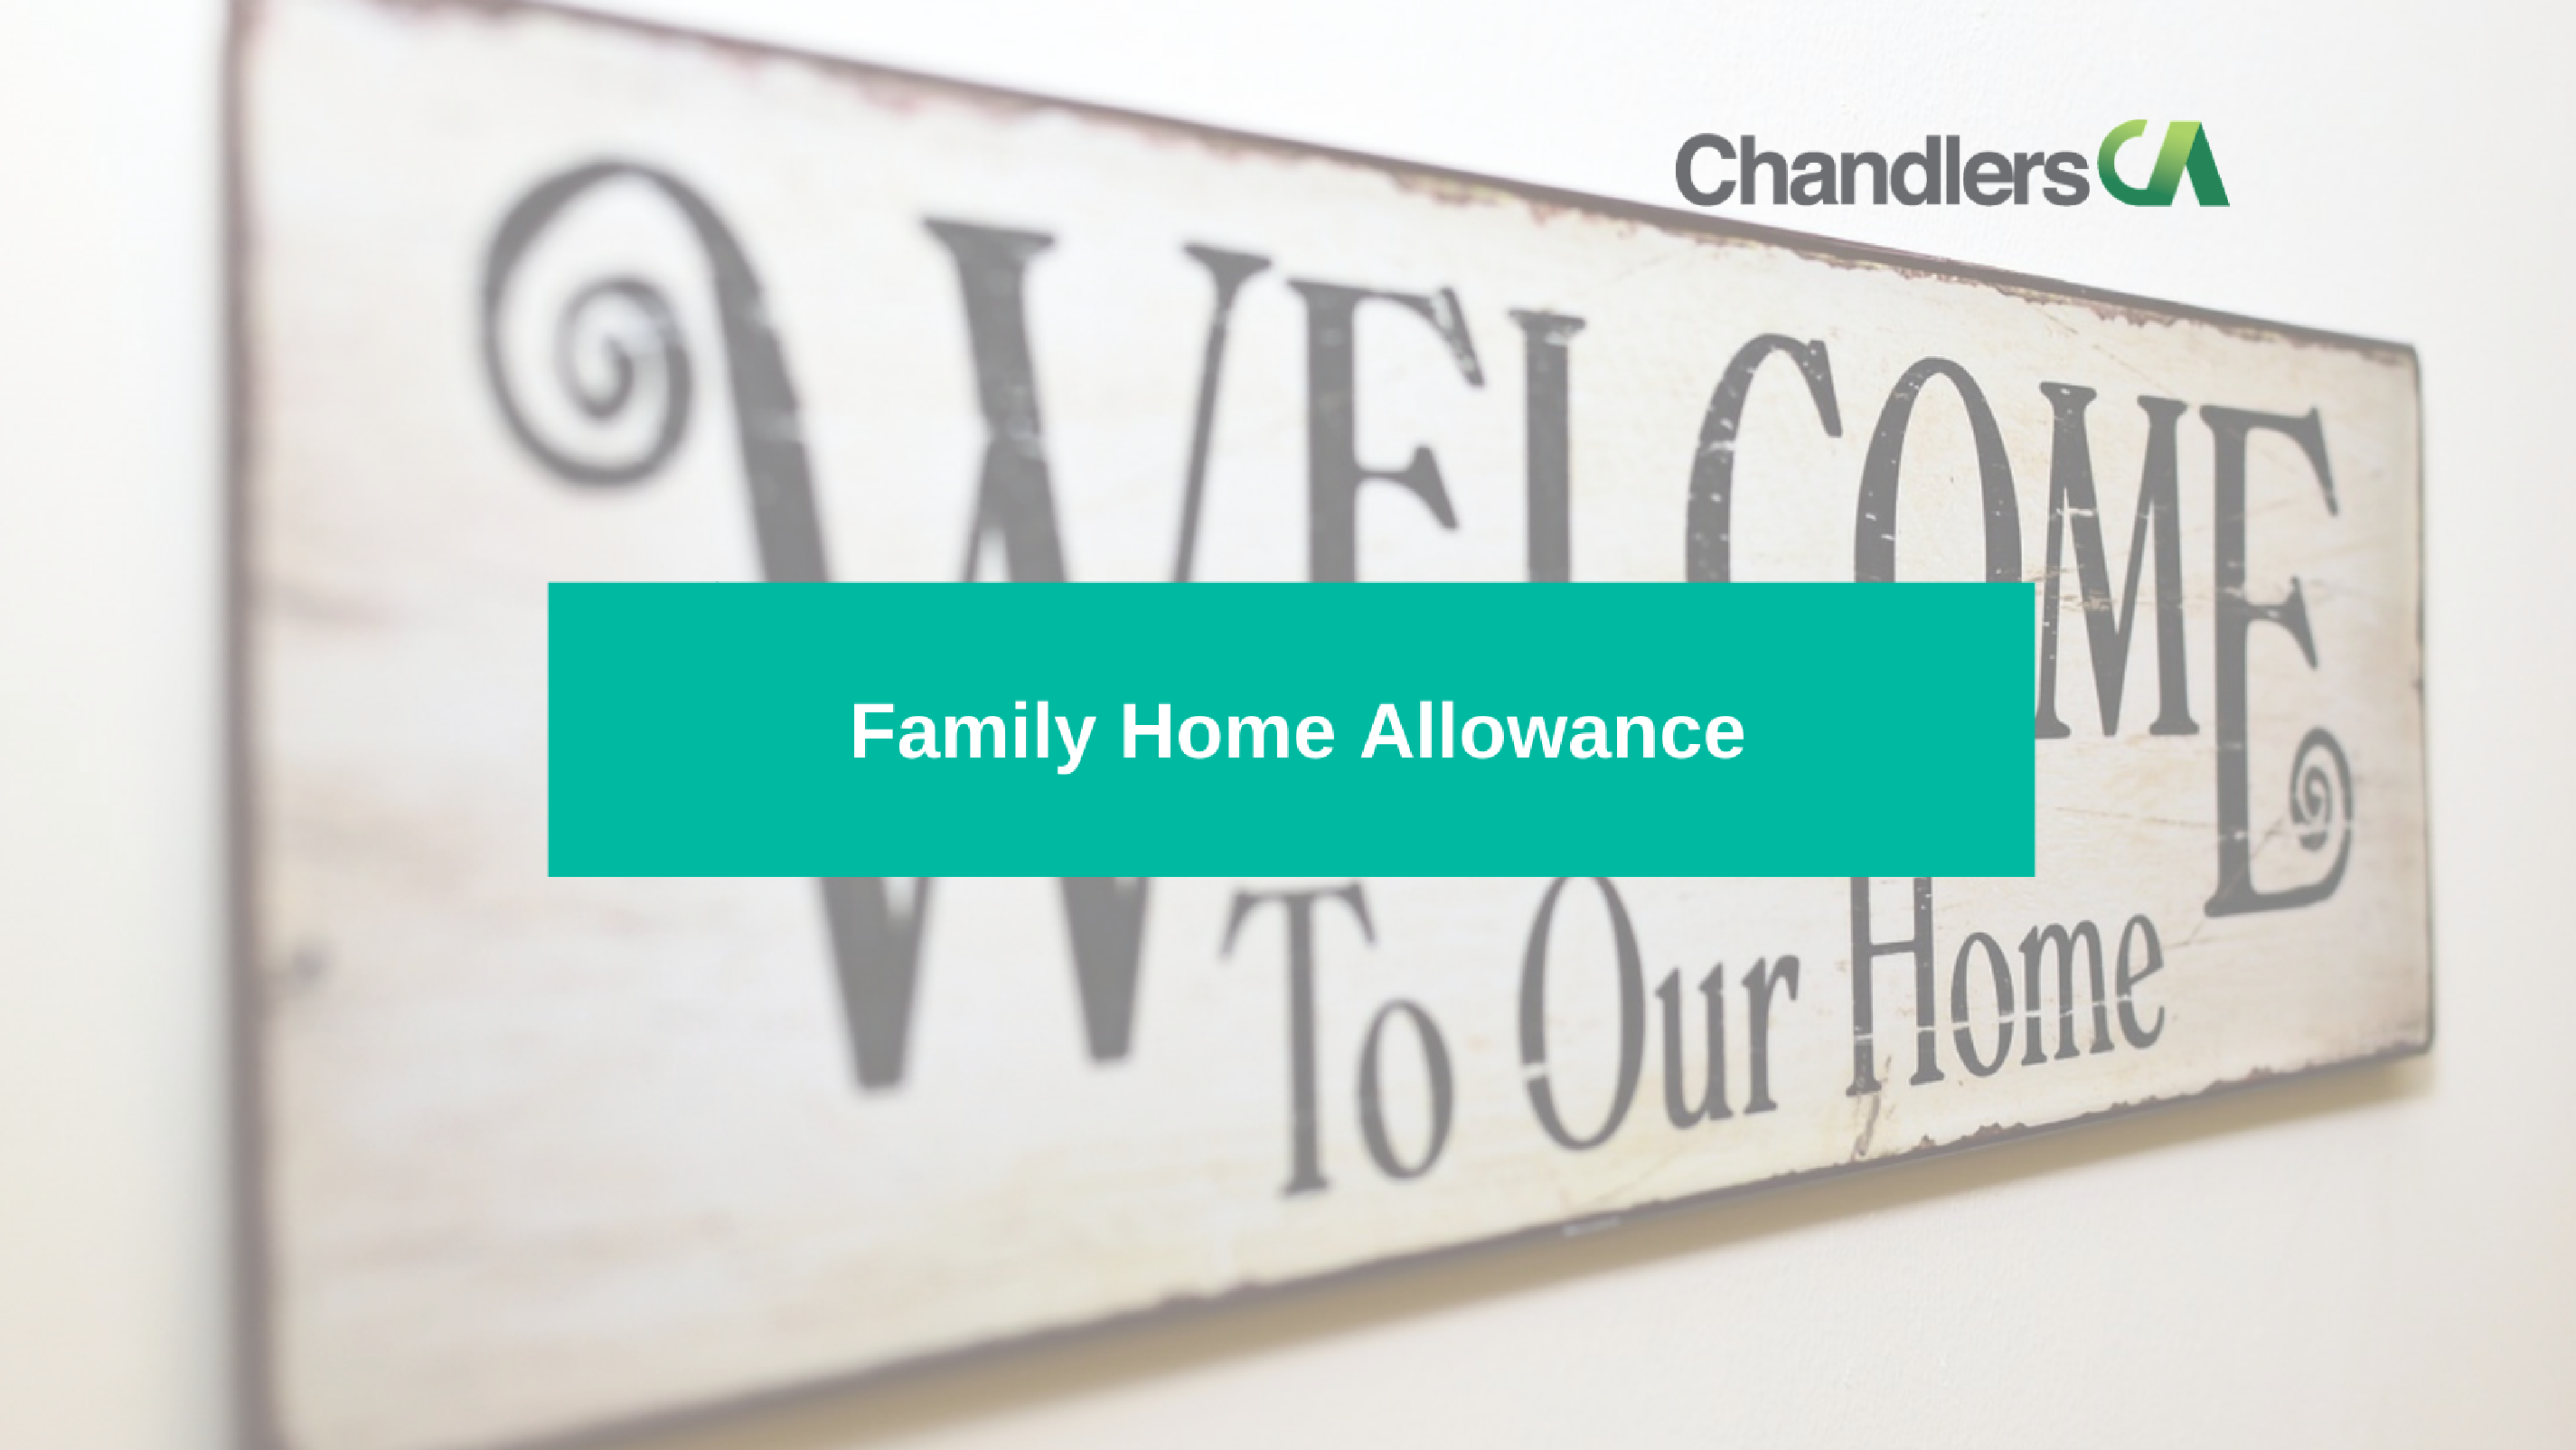 Guide to the family home allowance for 2017